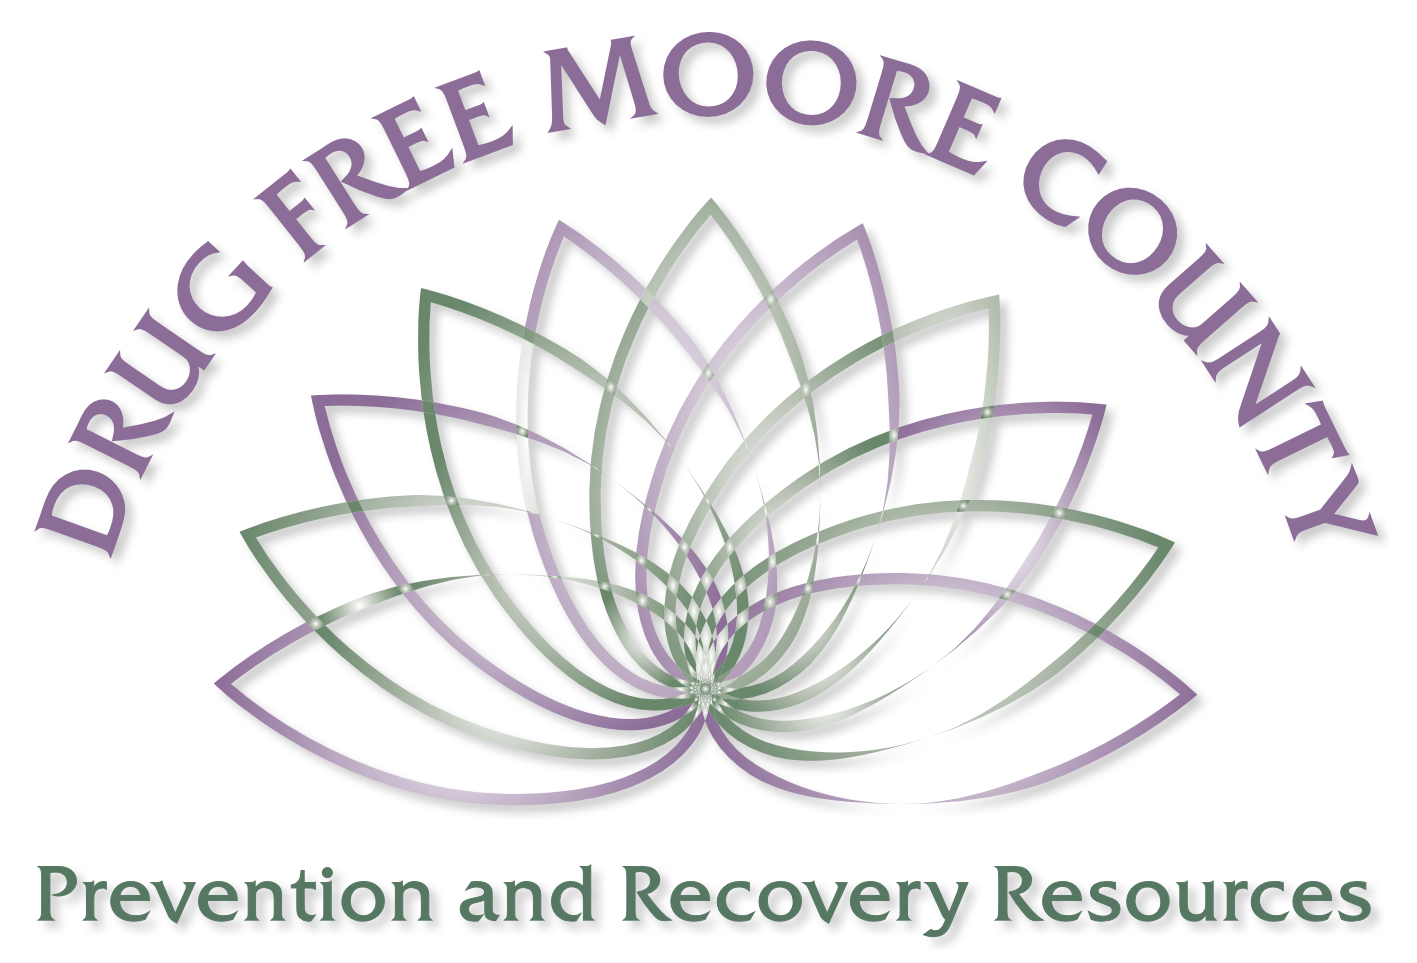 Drug Free Moore County NC